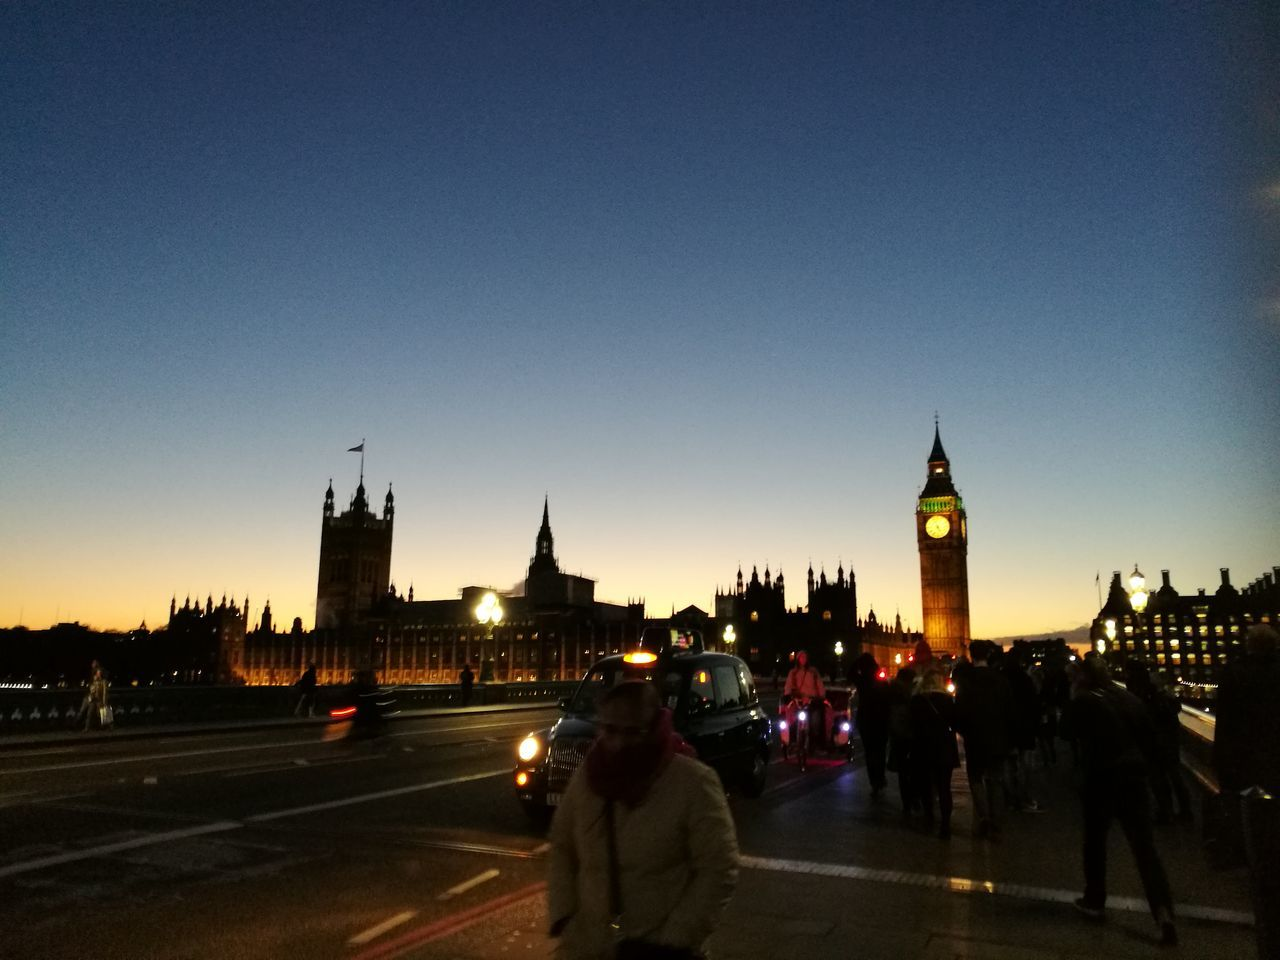 City Cityscape Sunset Bridge - Man Made Structure City Life Travel Destinations Cultures Dusk Clock Tower Morning Urban Skyline Politics And Government Tourism Built Structure City Break Clock Architecture People Outdoors Sky London Westminster Big Ben Dramatic Sky City Life